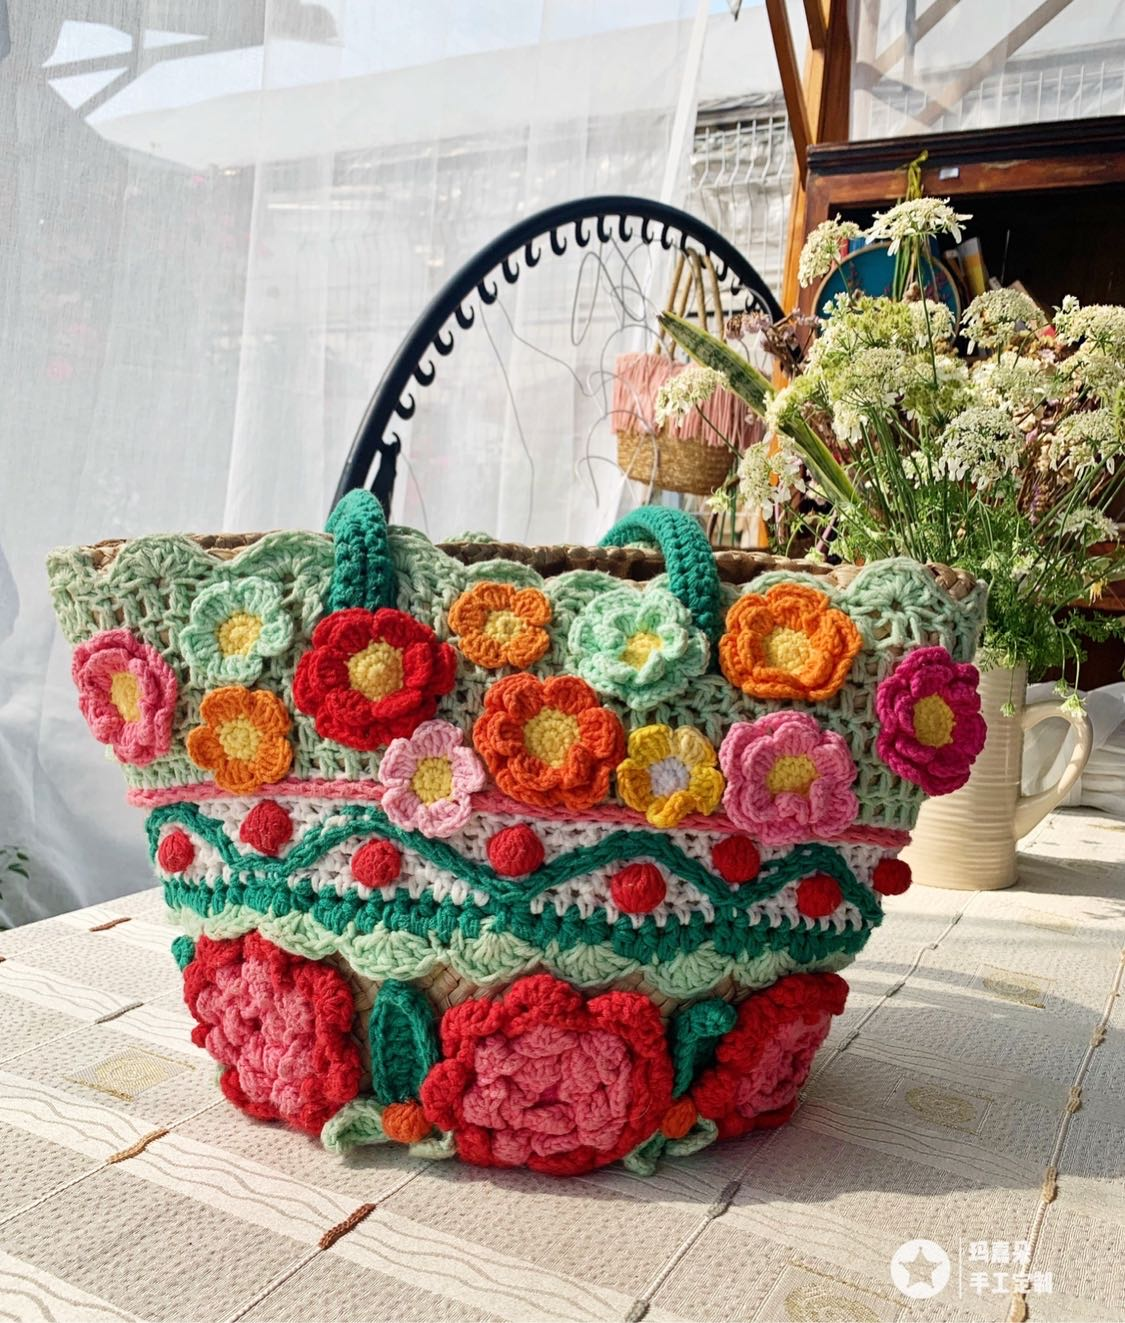 Original manual design of majado Flower Shadow colorful series big flower bag handbag French picnic basket material bag